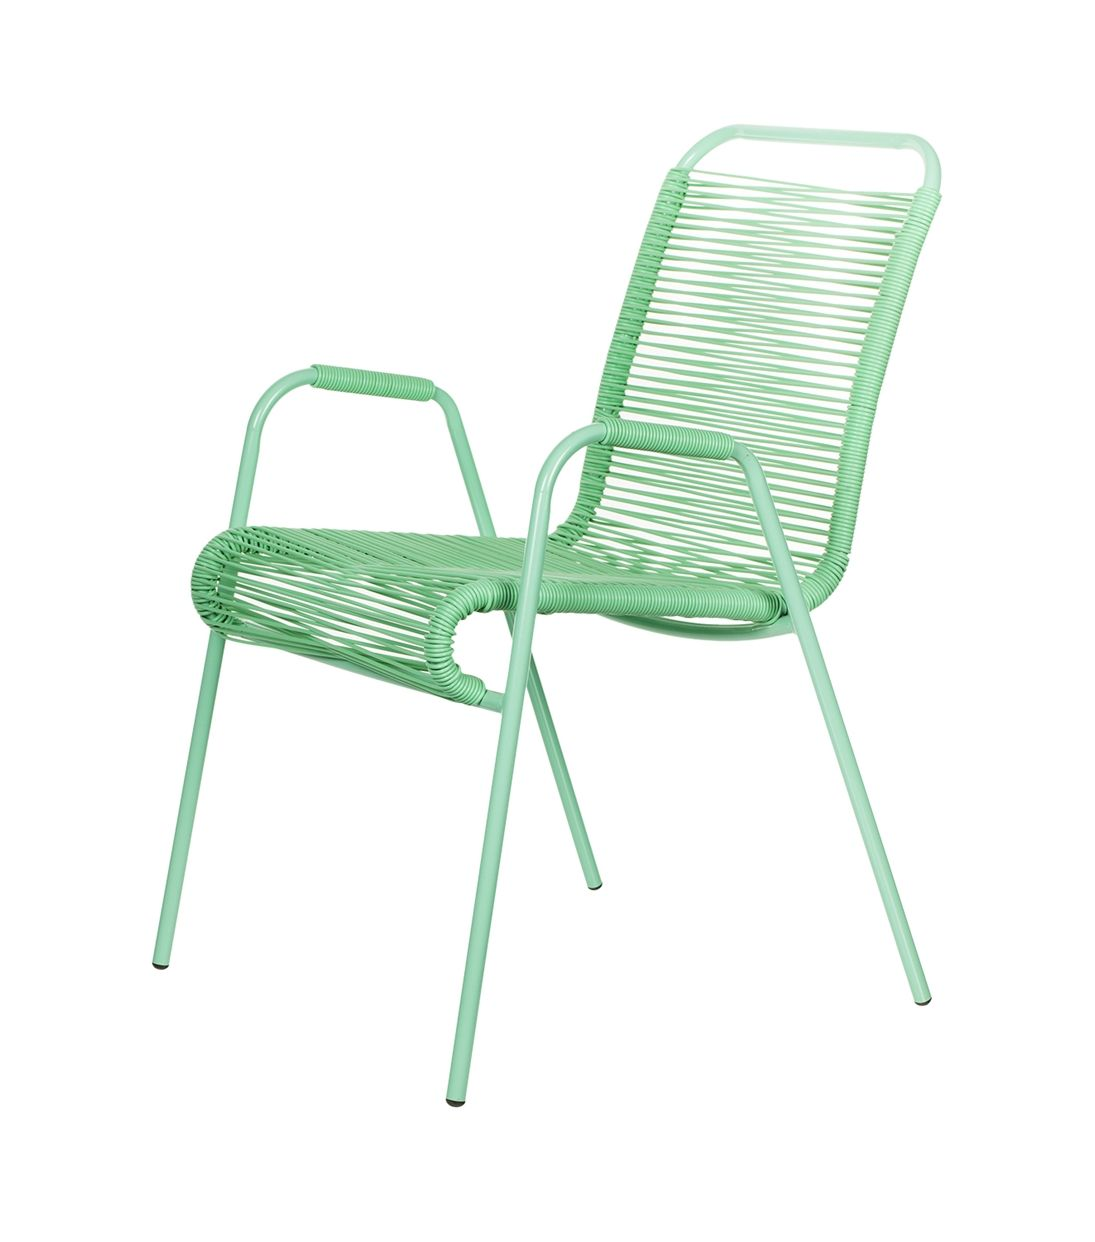 Houten Tuinstoelen Hema.Hema Tuinstoel Hebbedingen Outdoor Decor Outdoor Chairs En Outdoor